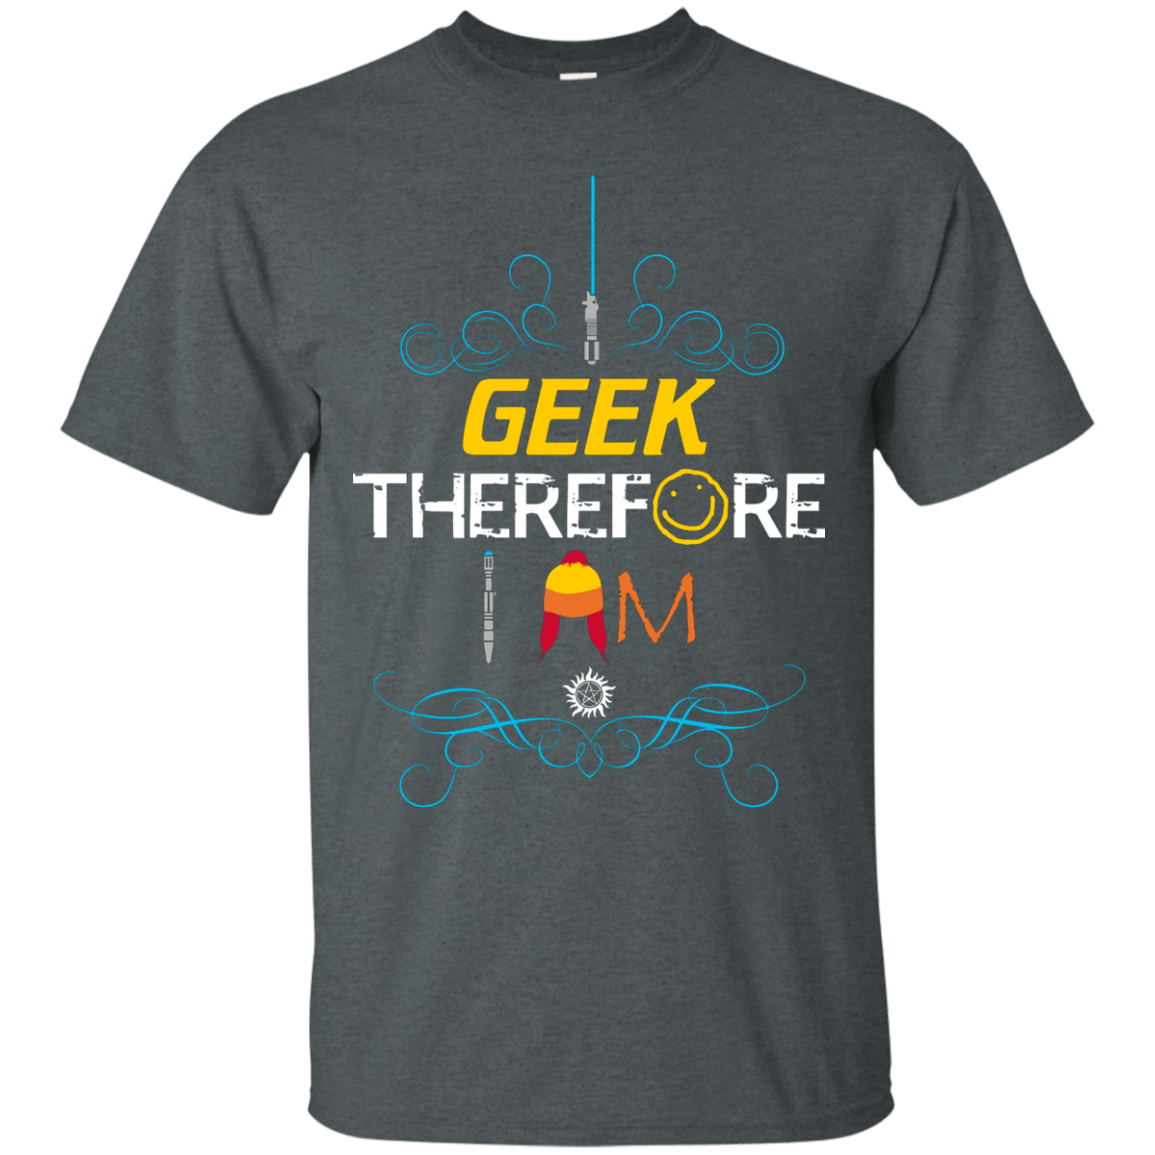 I GEEK vol 2 T-Shirt